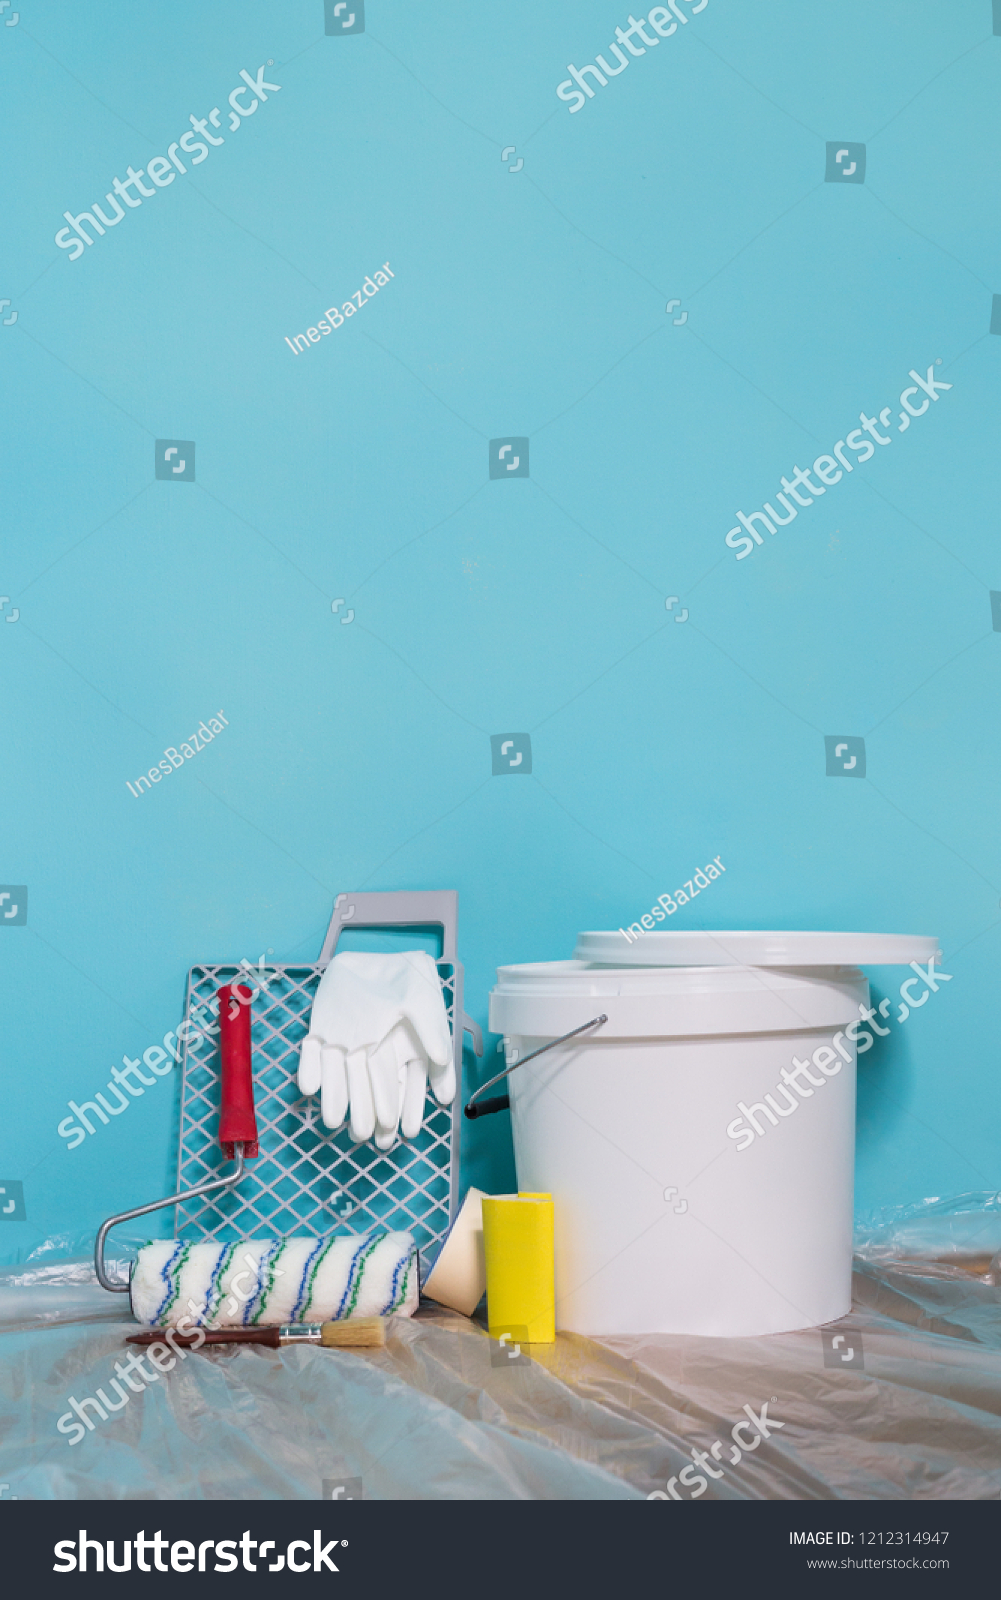 Image Equipment Painting Wall Stock Photo Edit Now 1212314947